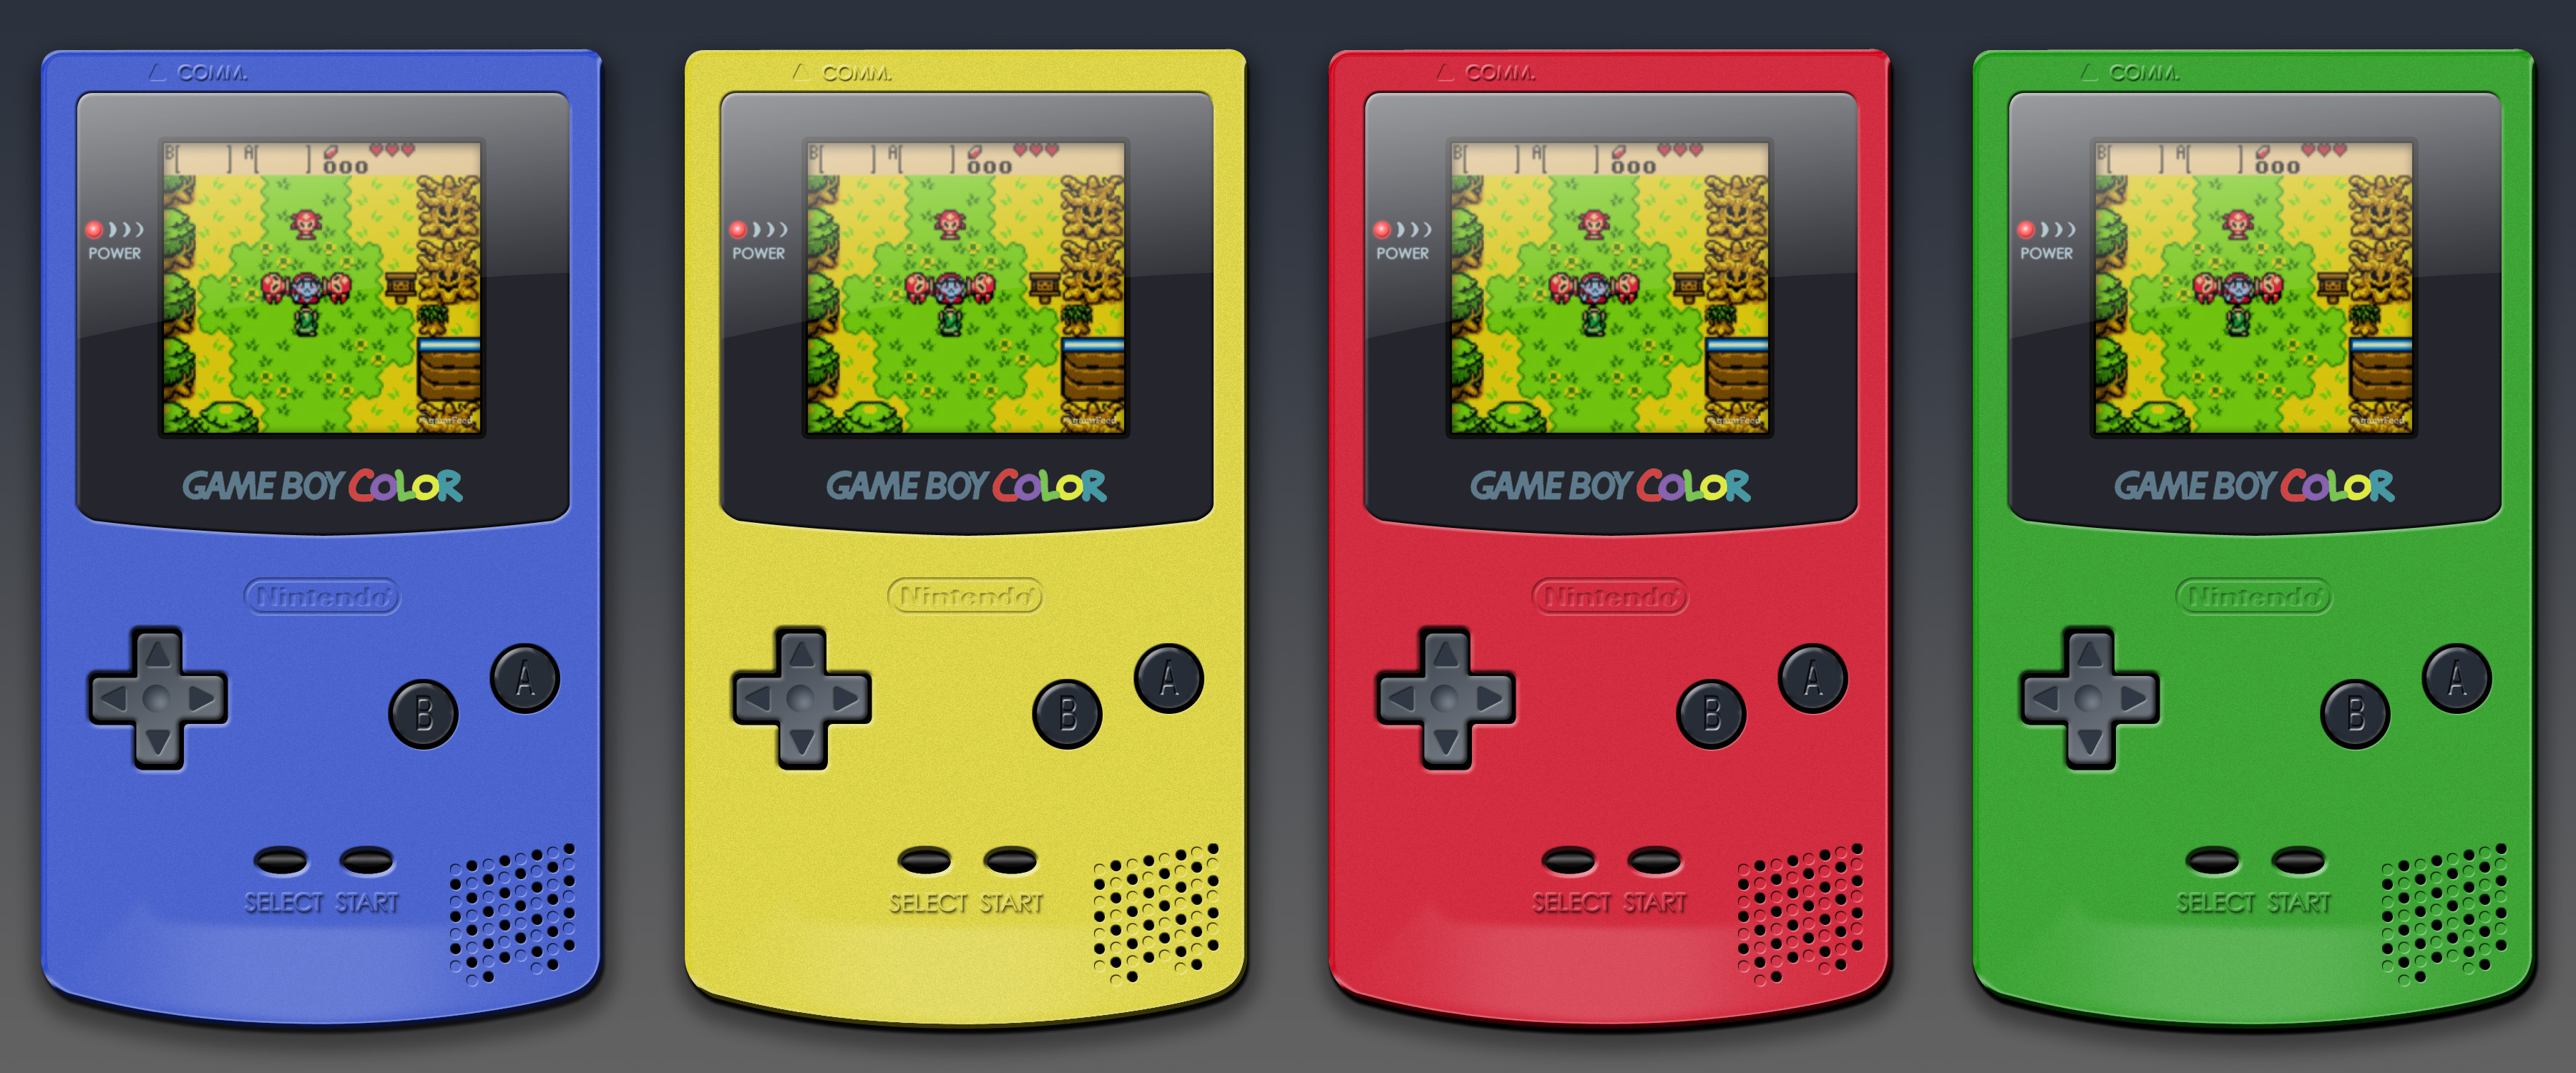 Gameboy color palettes - Attachment